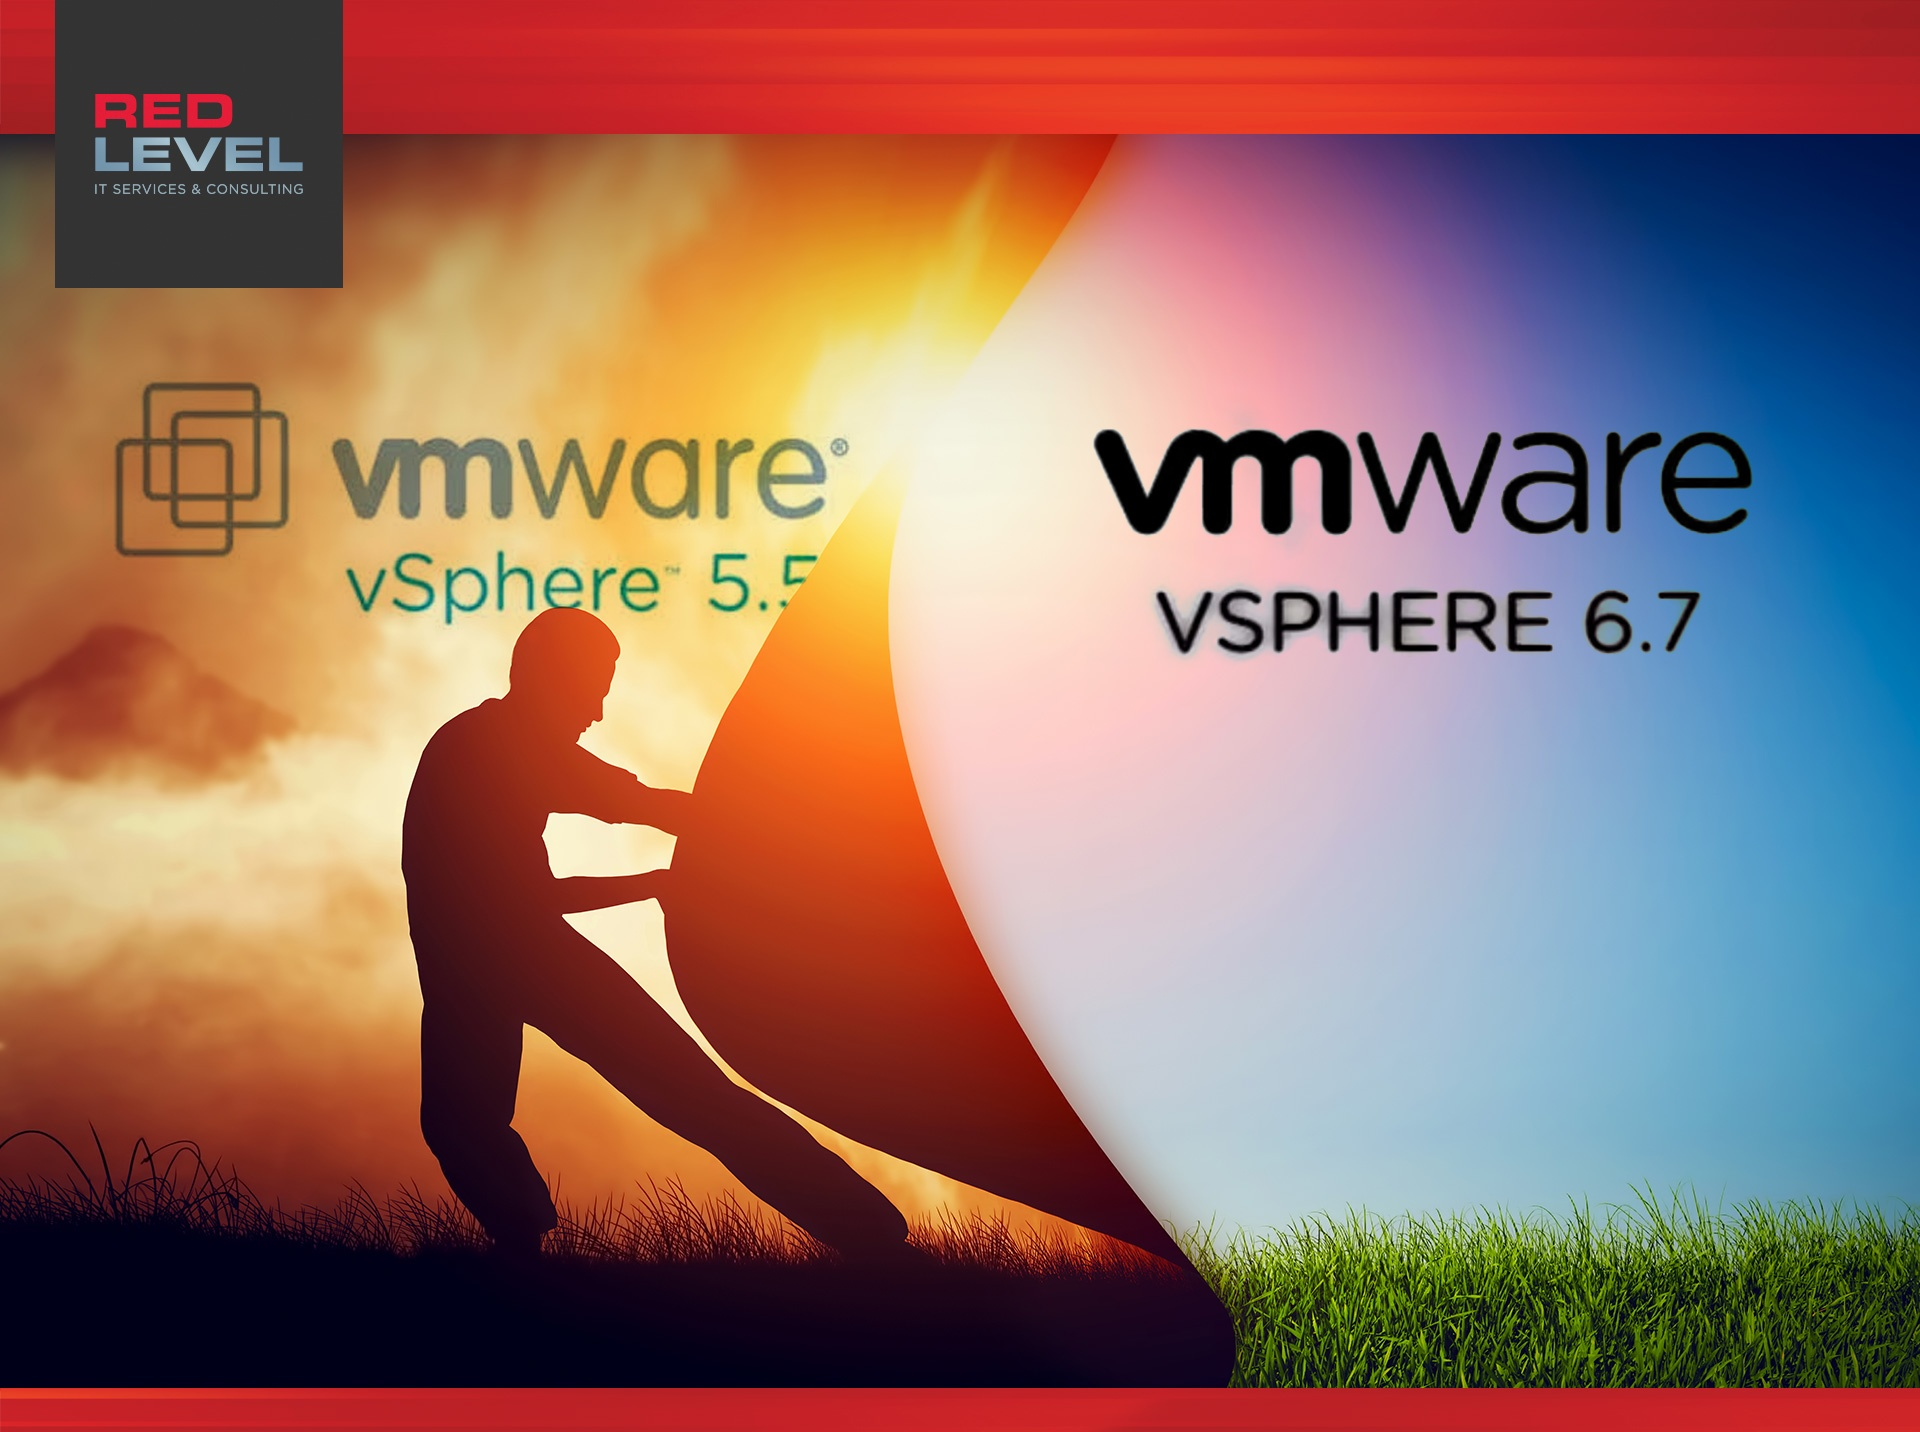 VMWARE VSPHERE 5.5 REACHES END OF LIFE – AND IT'S TIME TO MOVE